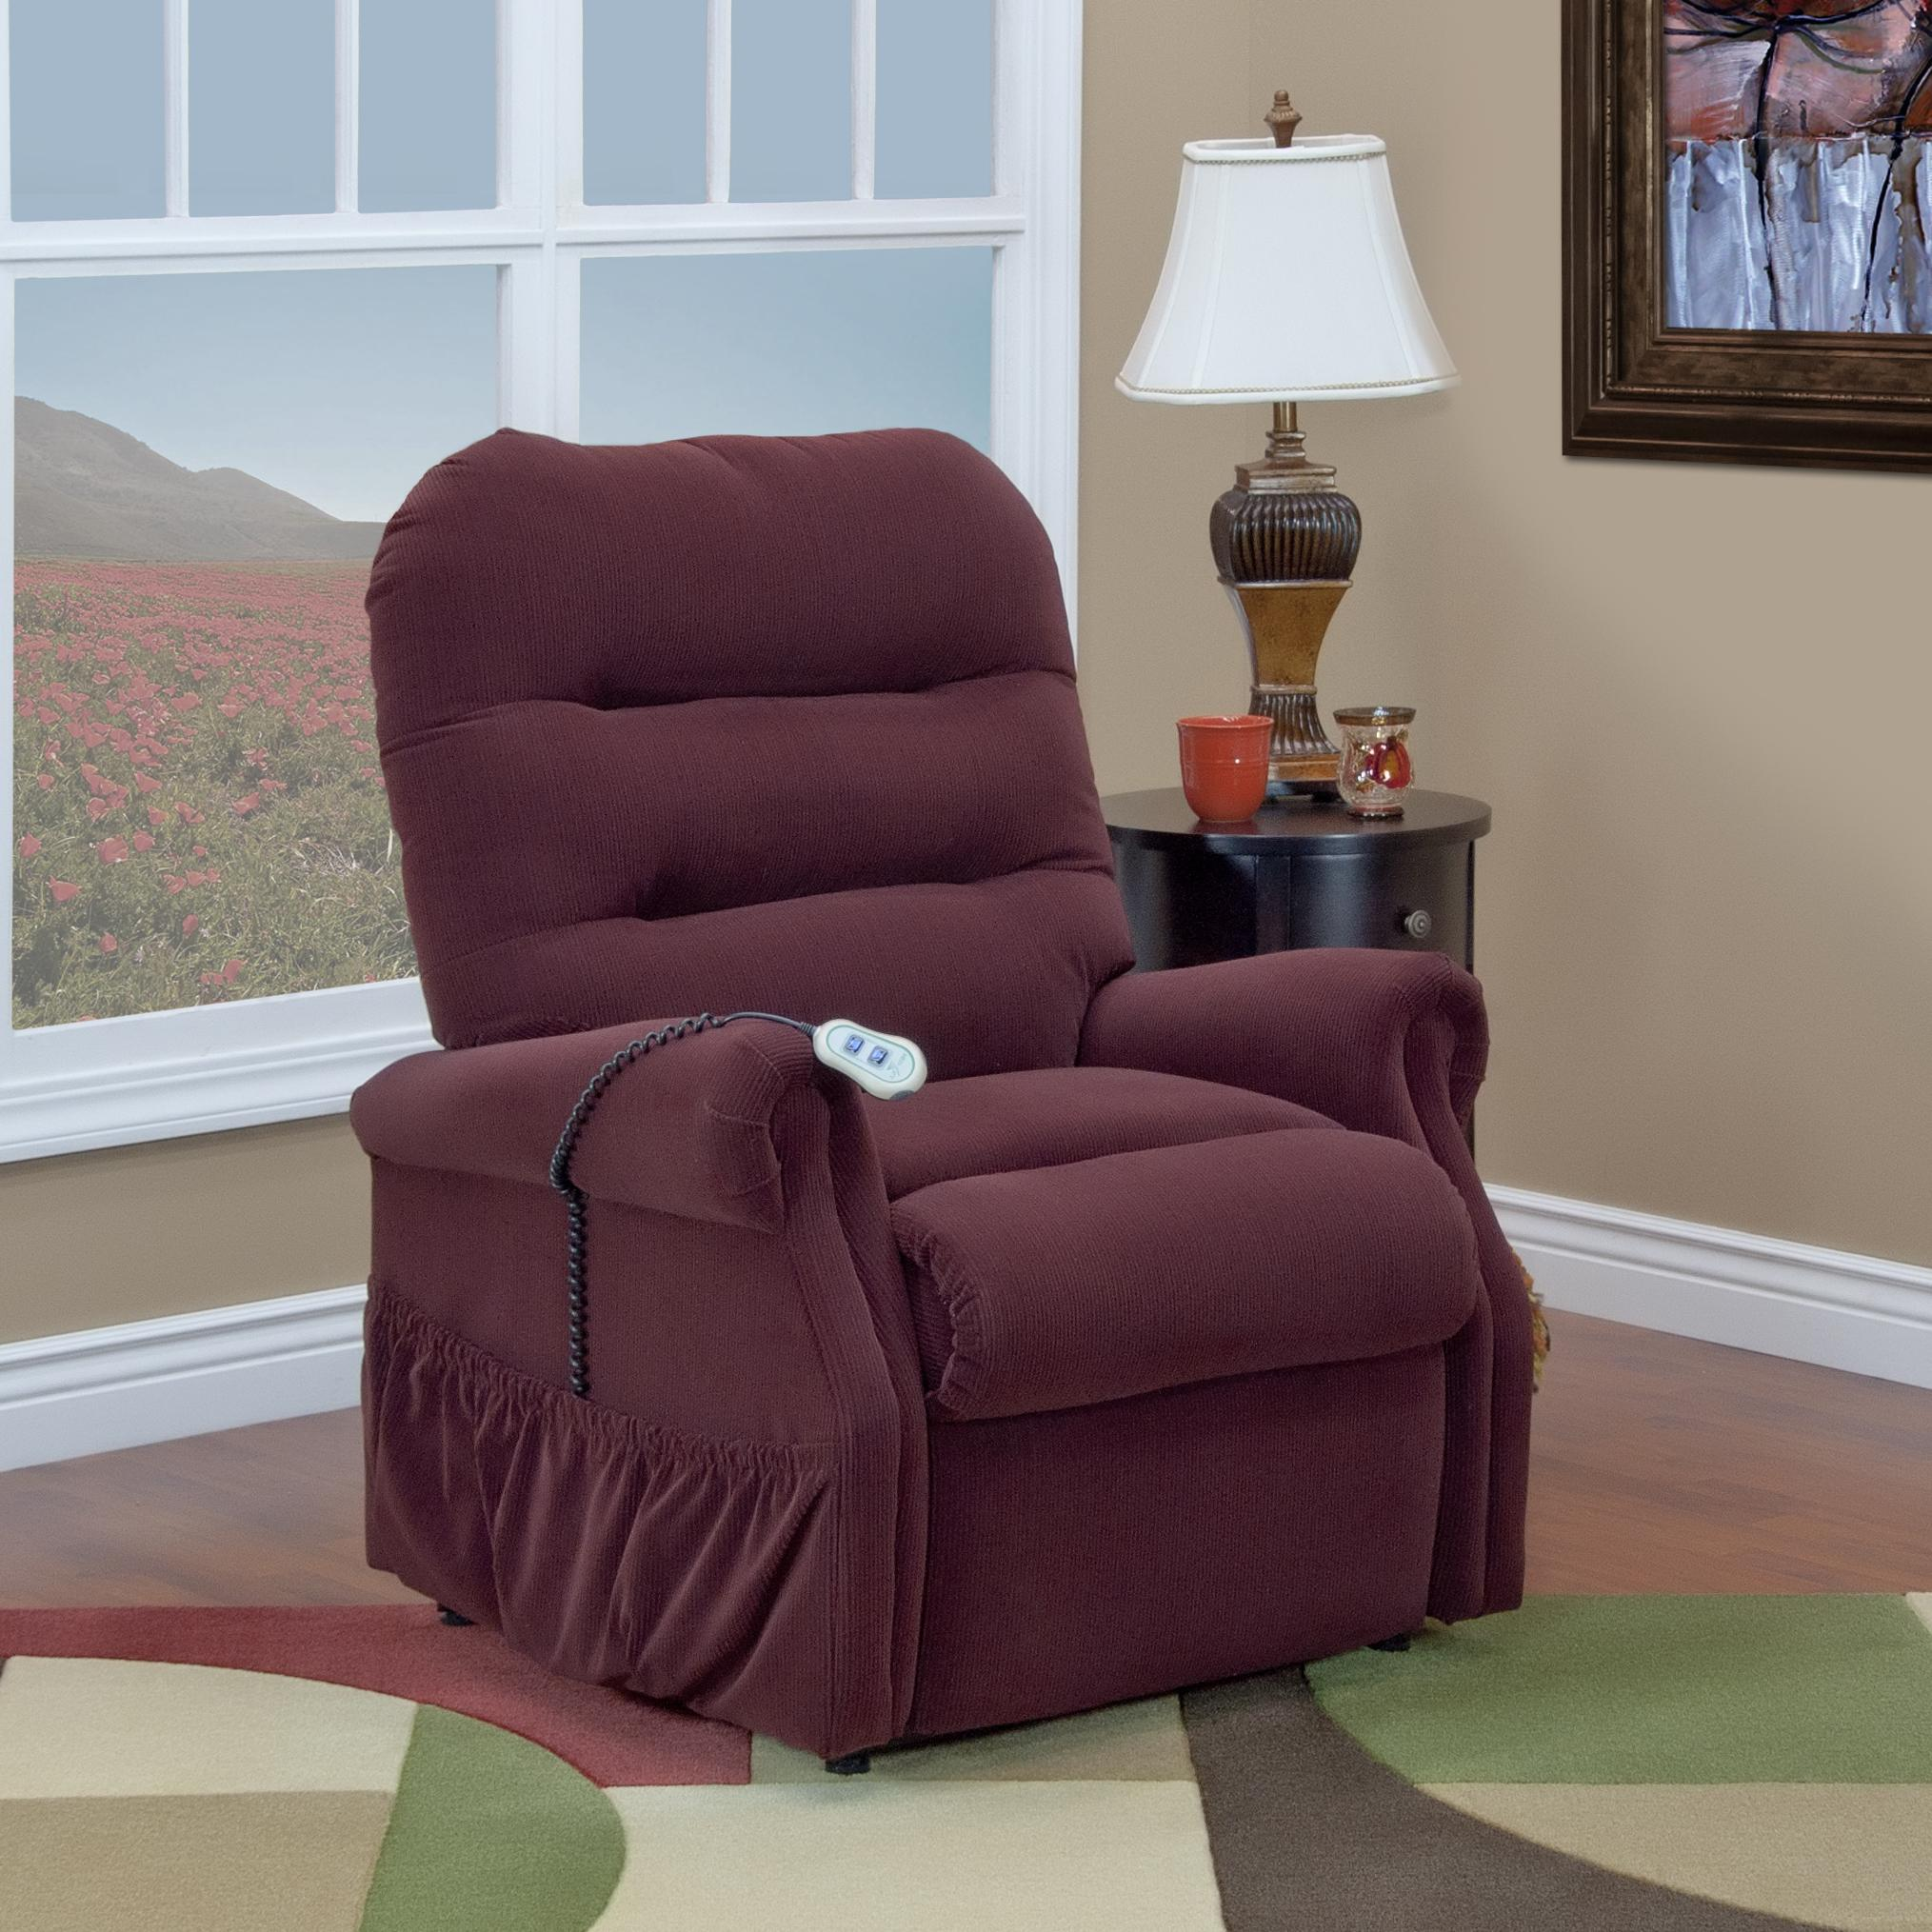 3053 Lift Recliner by Med-Lift & Mobility at Story & Lee Furniture